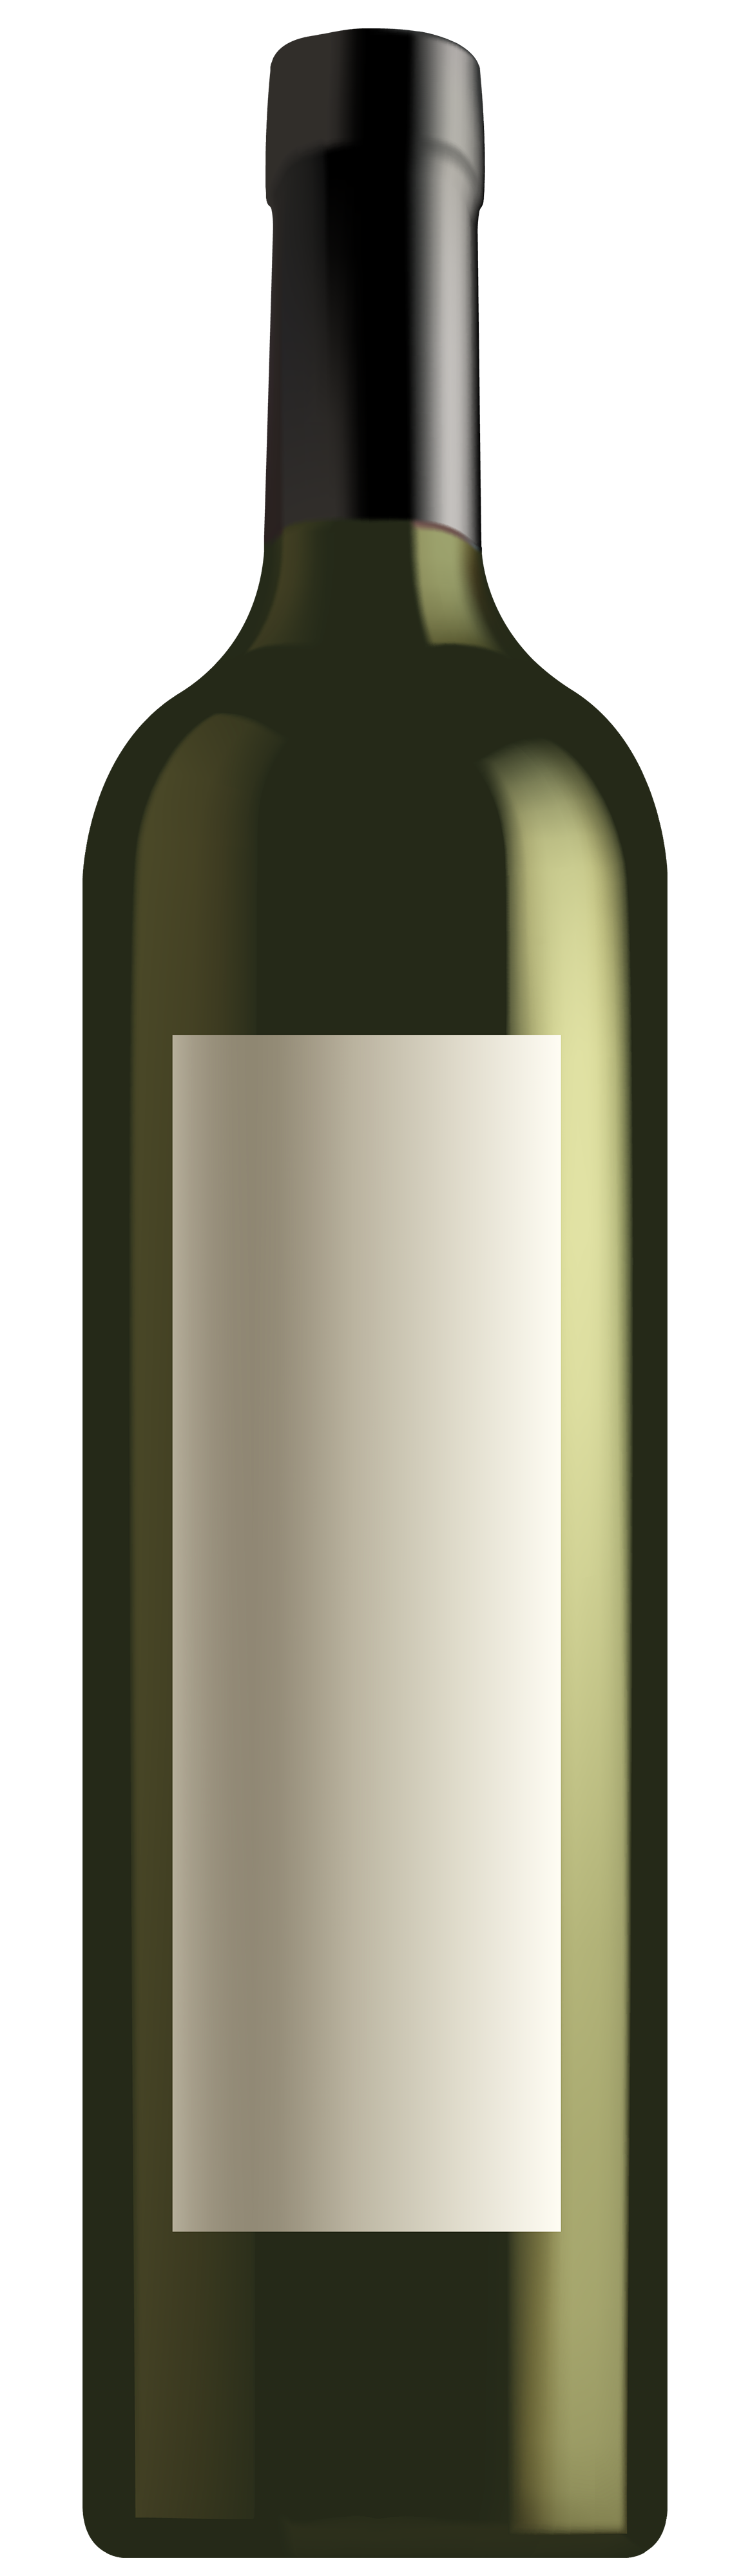 White wine bottle png. Green clipart best web